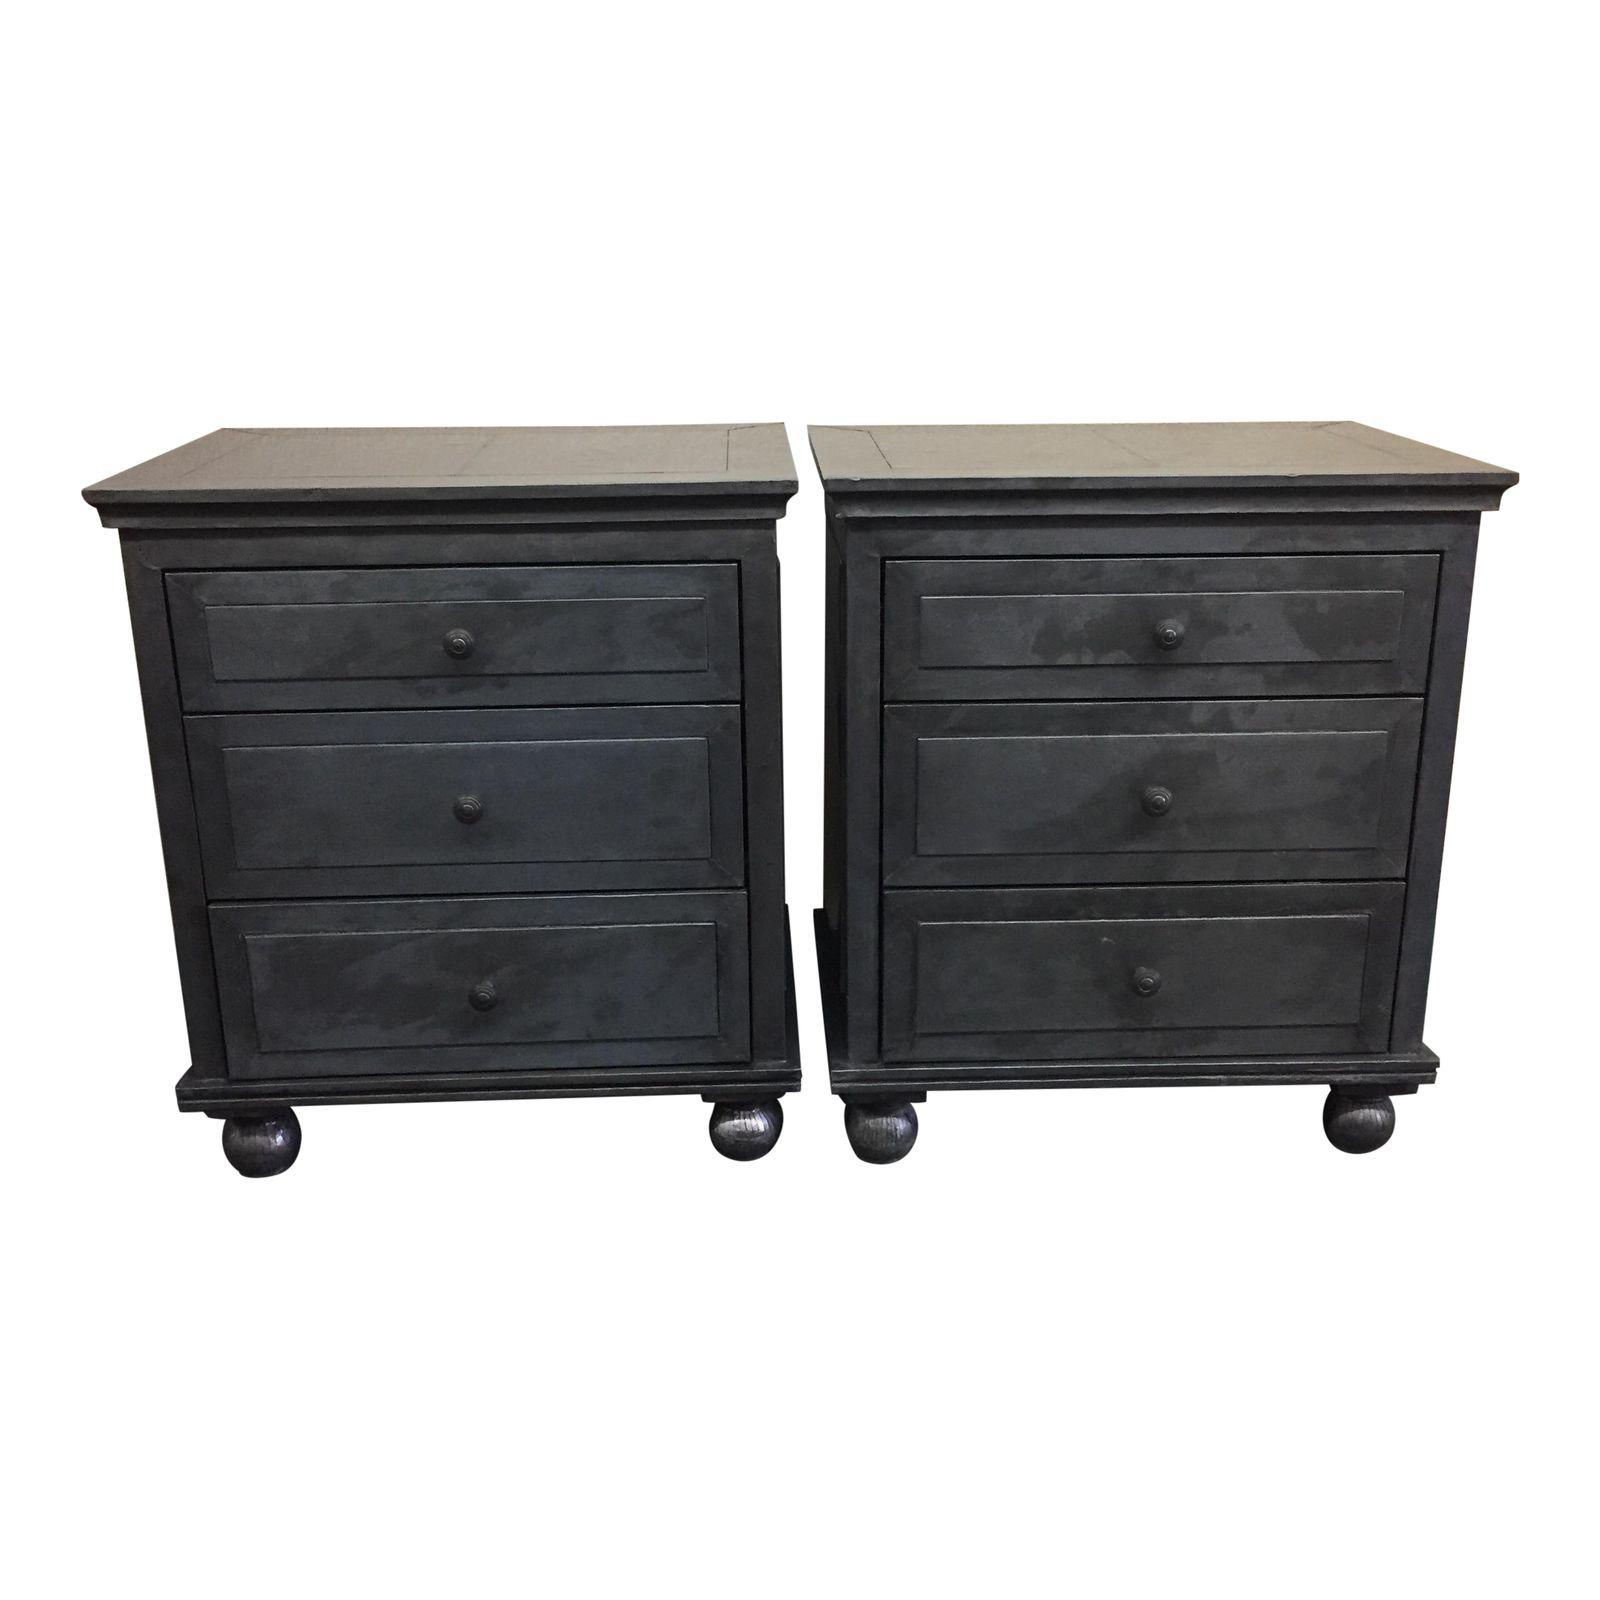 Restoration Hardware Zinc Wrapped Nightstands   A Pair   Design Plus Gallery